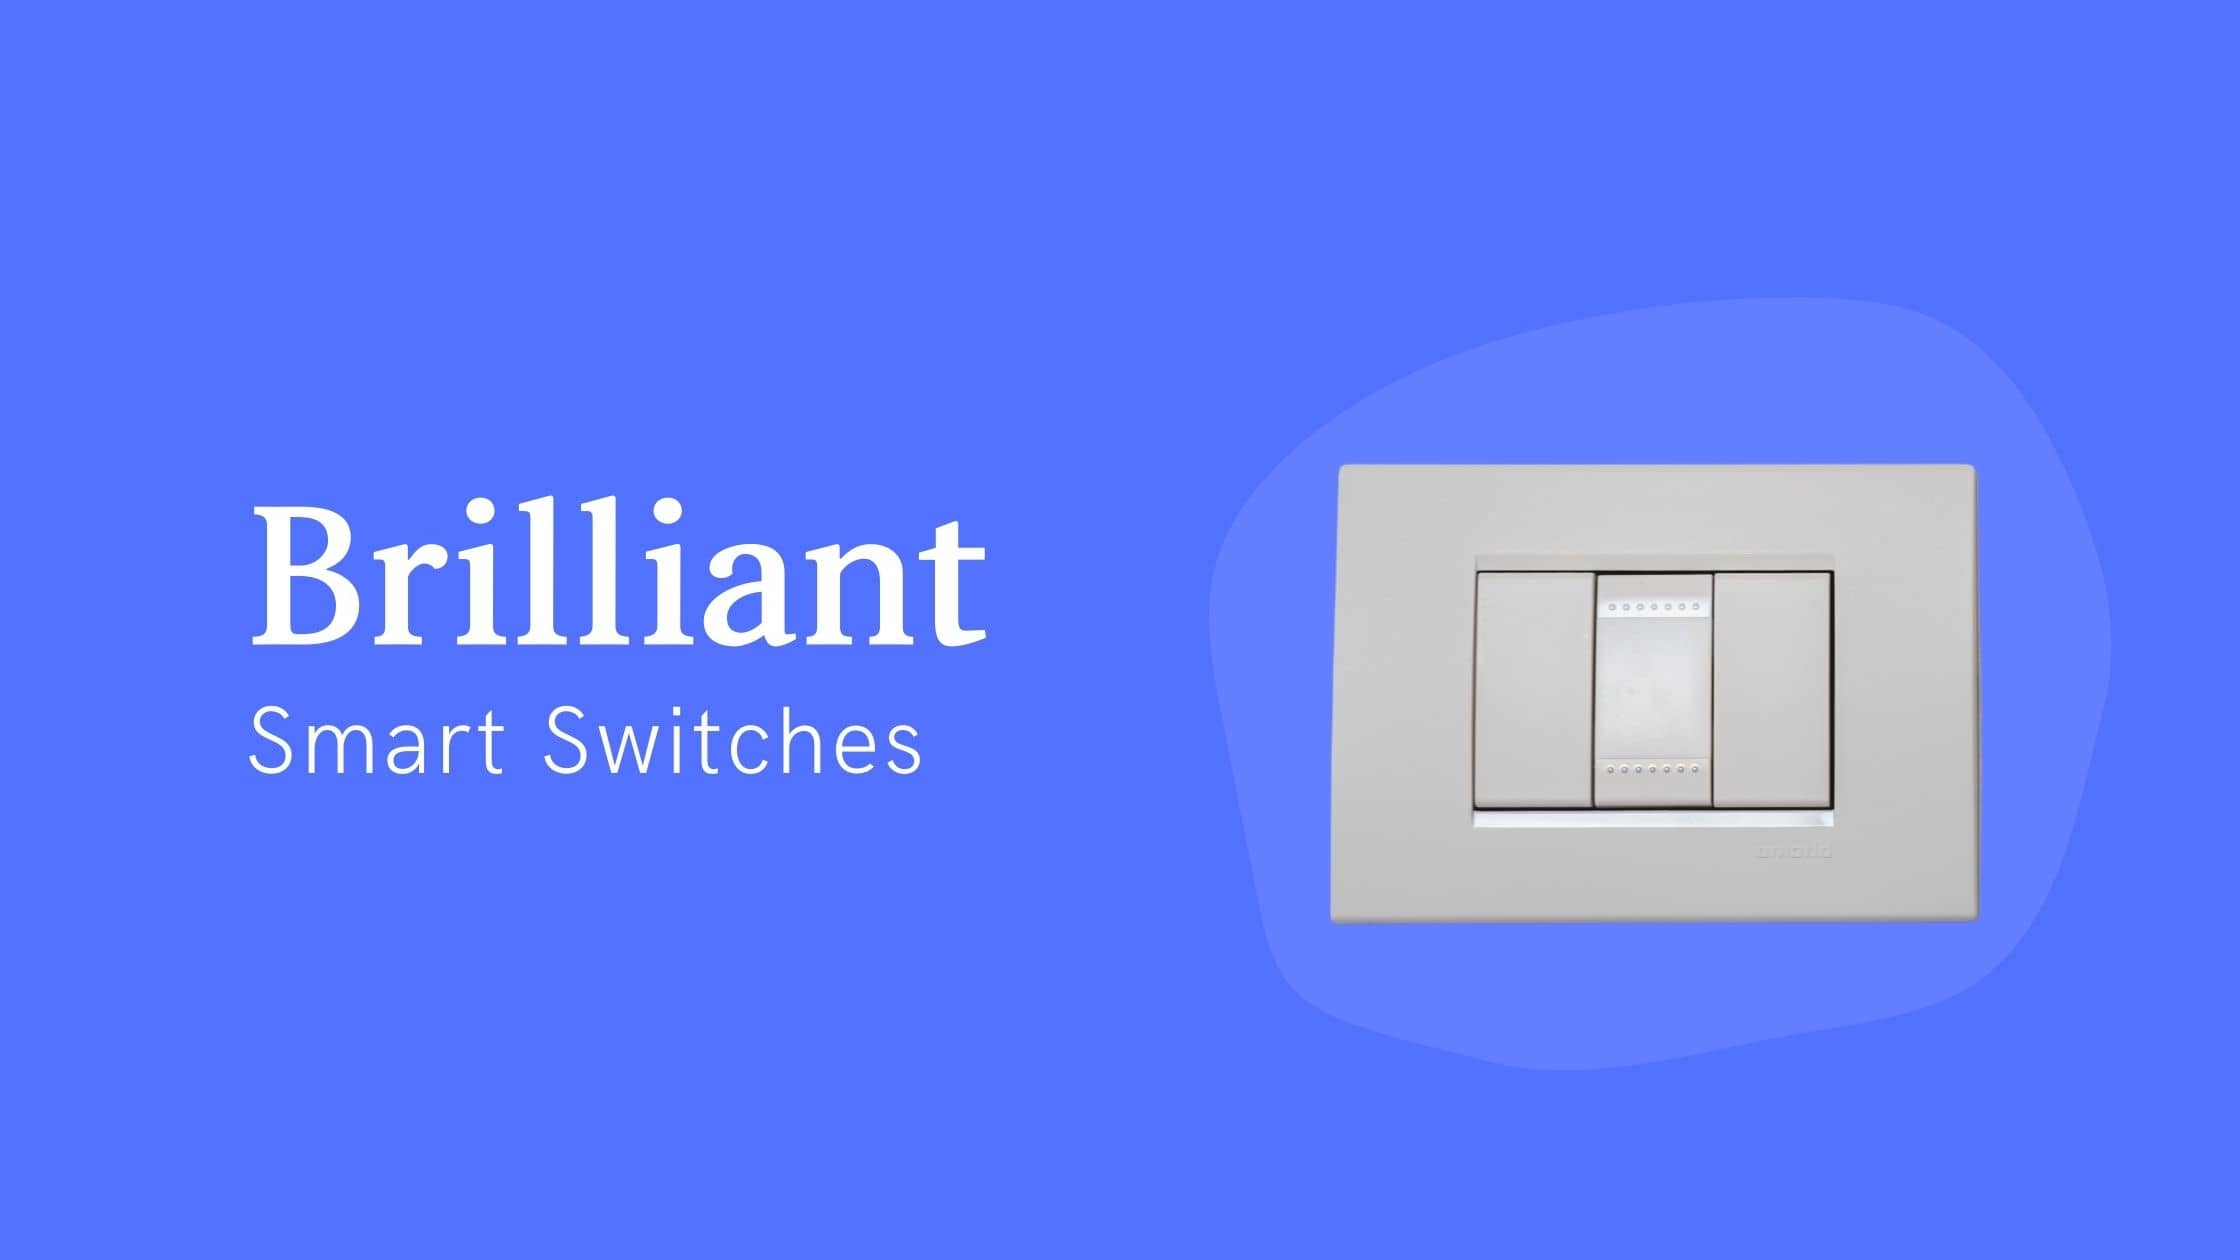 Brilliant Smart Switches